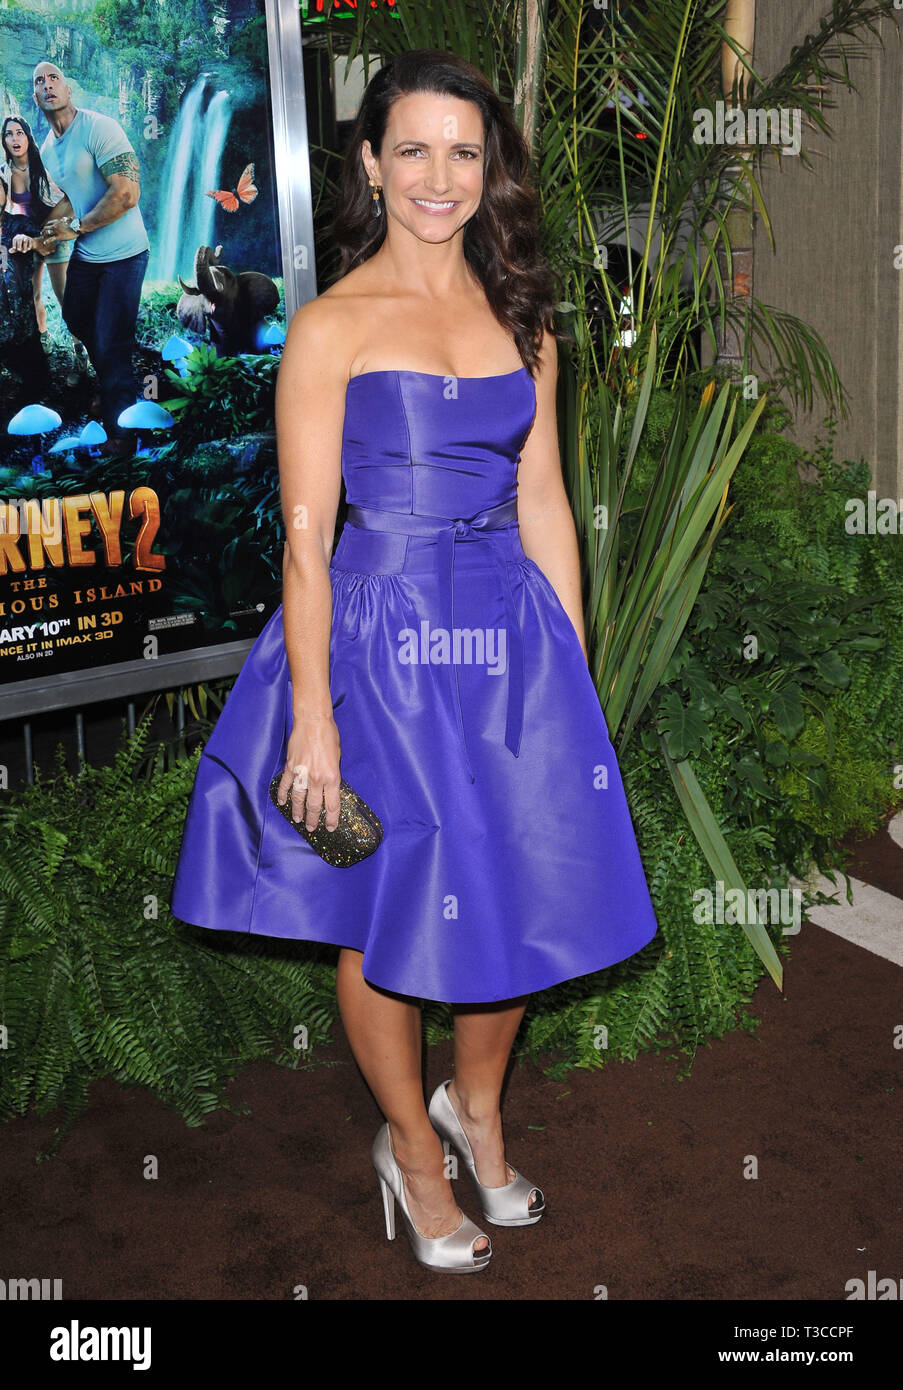 Kristin Davis At The Journey 2 The Mysterious Island Premiere At The Chinese Theatre In Los Angeles Kristin Davis 39 Event In Hollywood Life California Red Carpet Event Usa Film Industry Celebrities Photography